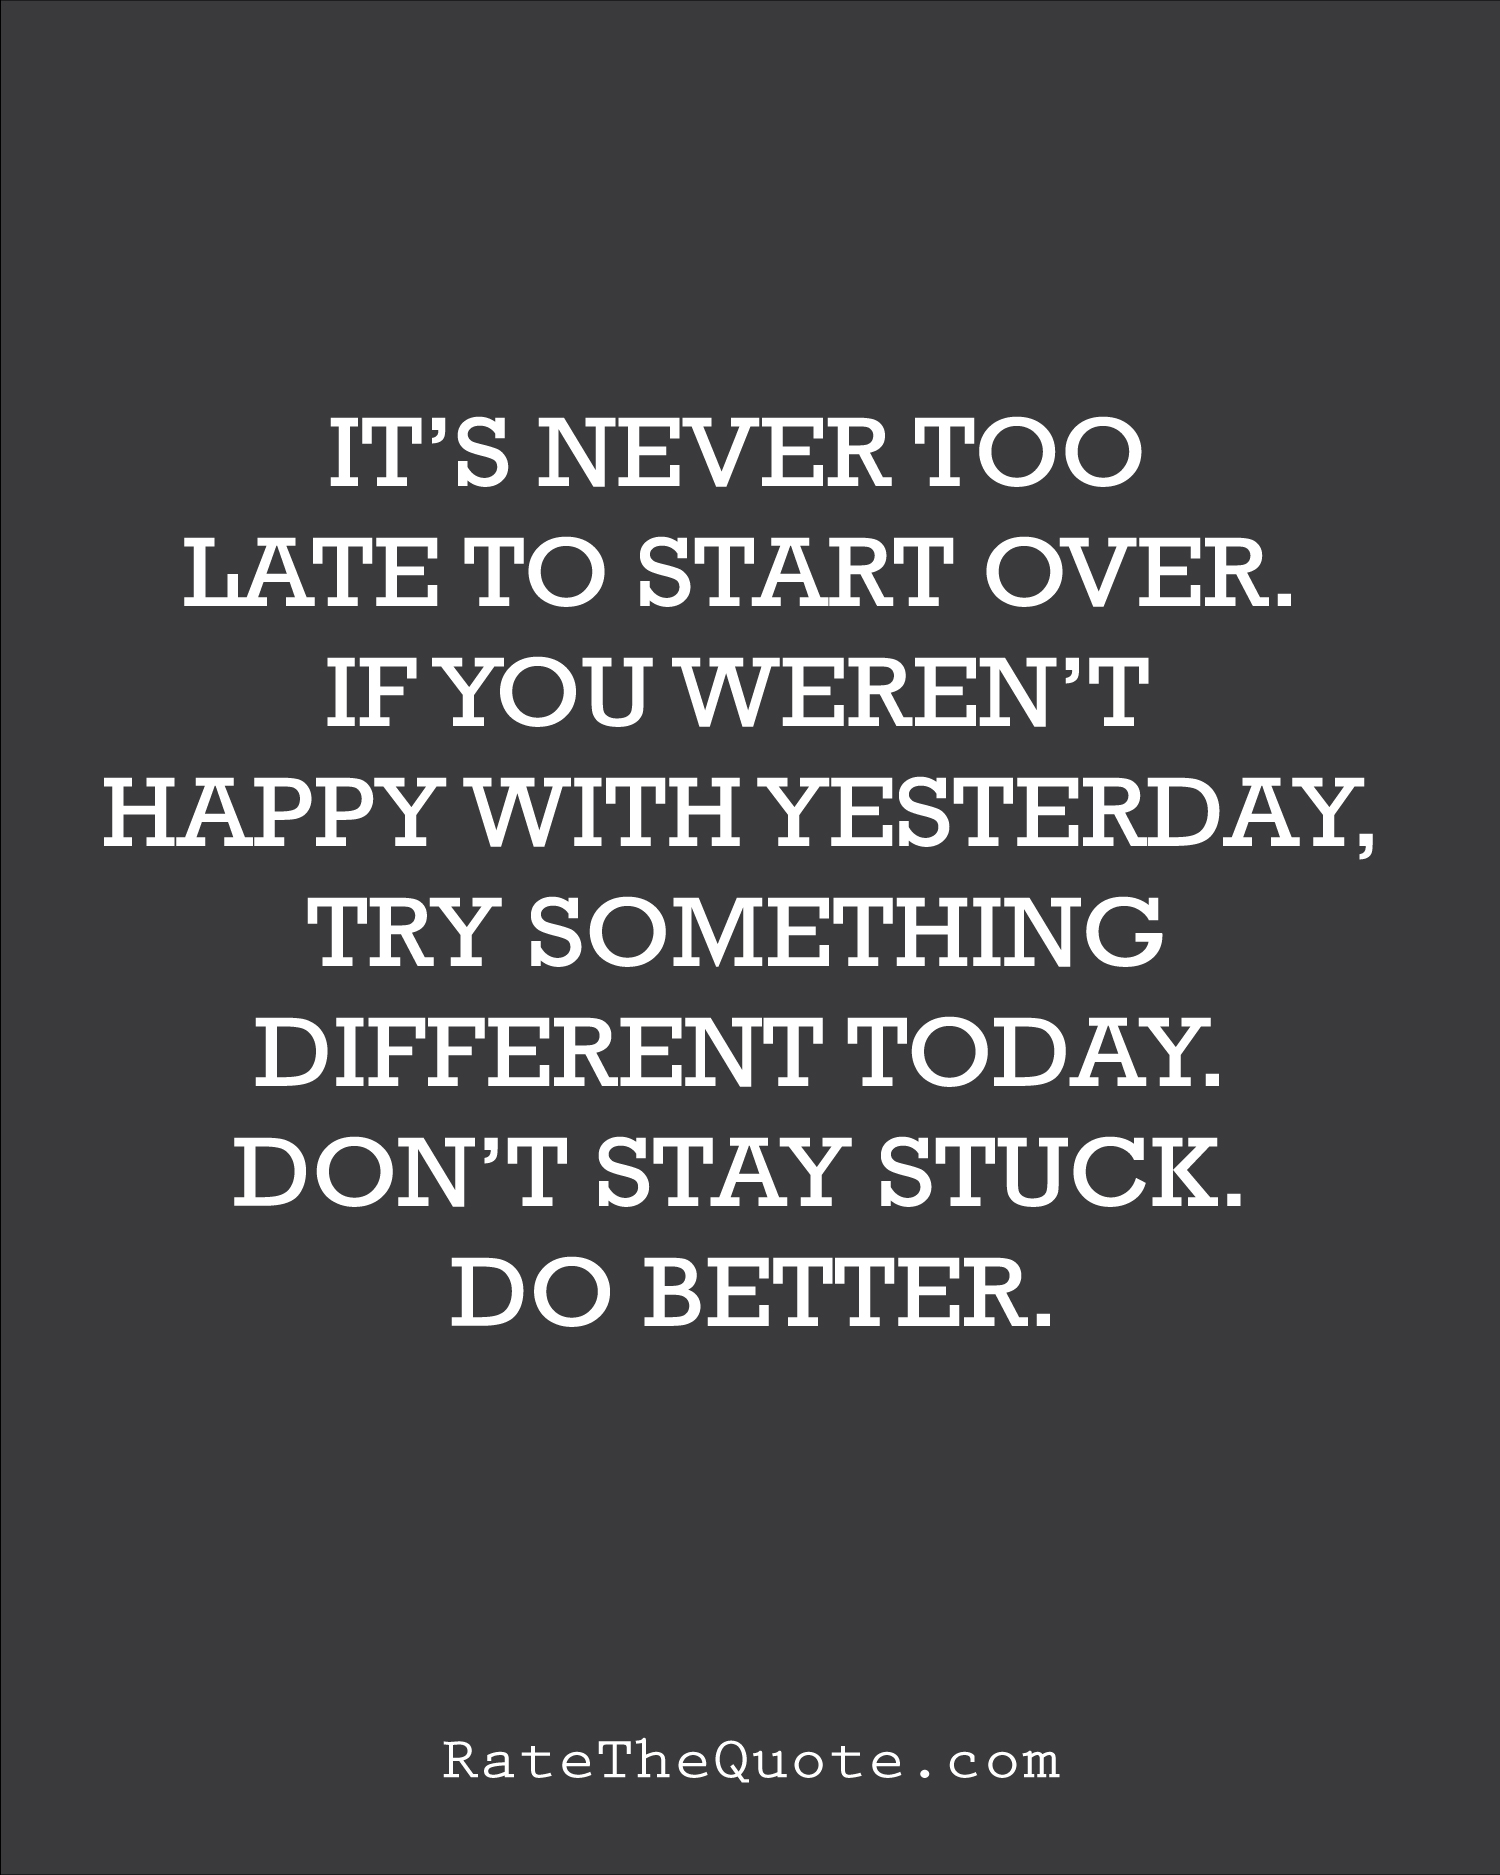 Quote It's never too late to start over. If you weren't happy with yesterday, try something different today. Don't stay stuck. Do better.